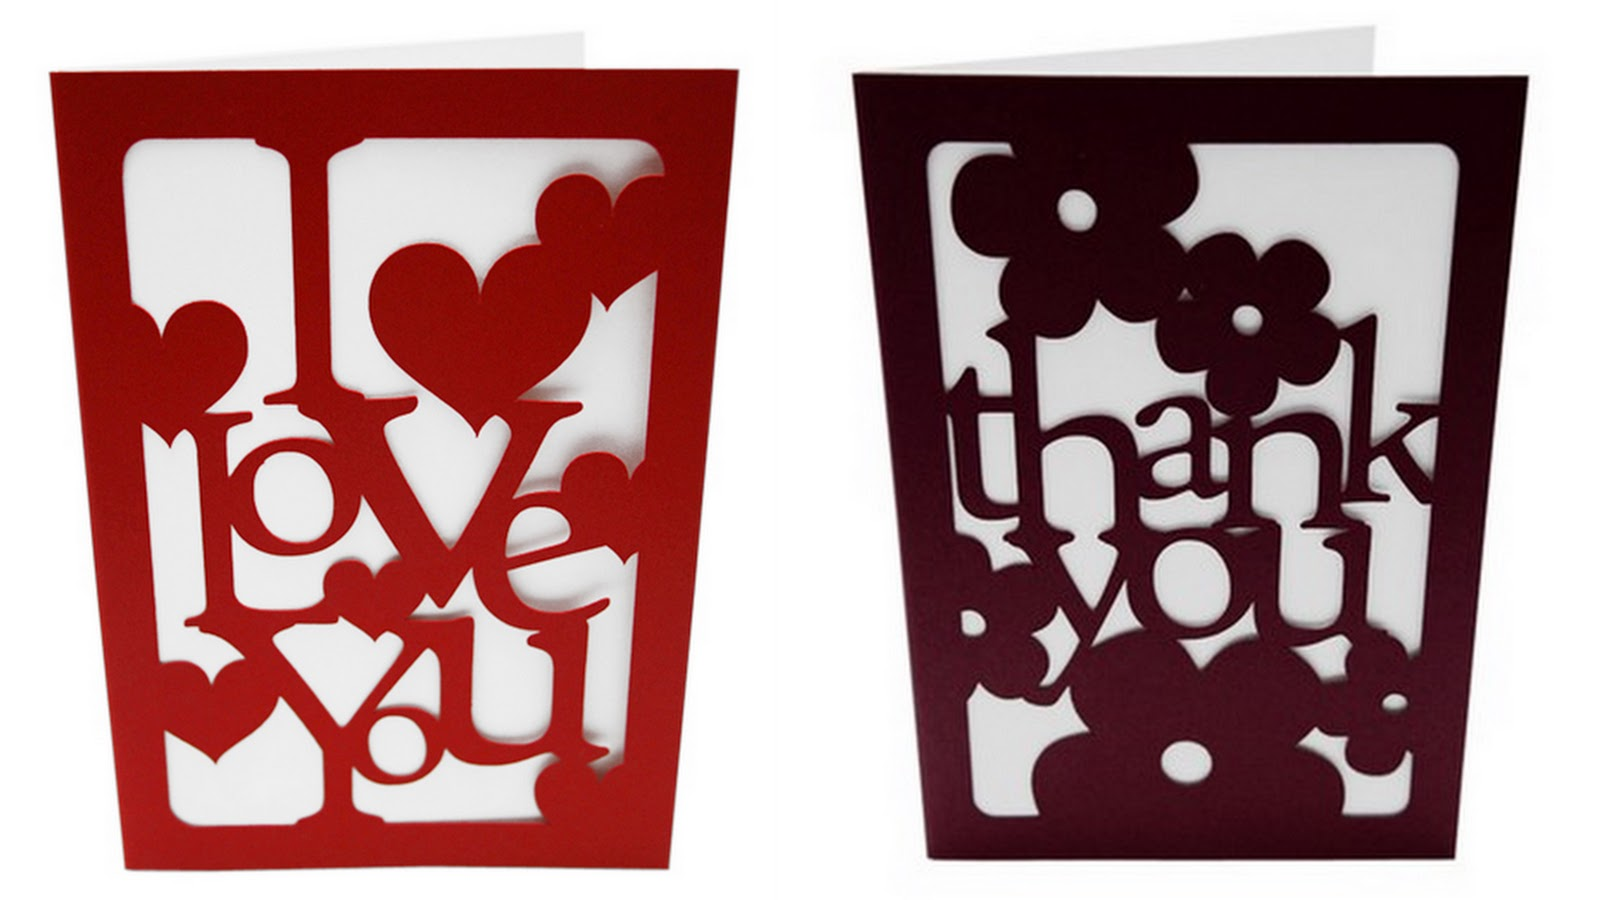 Great laser cut cards from